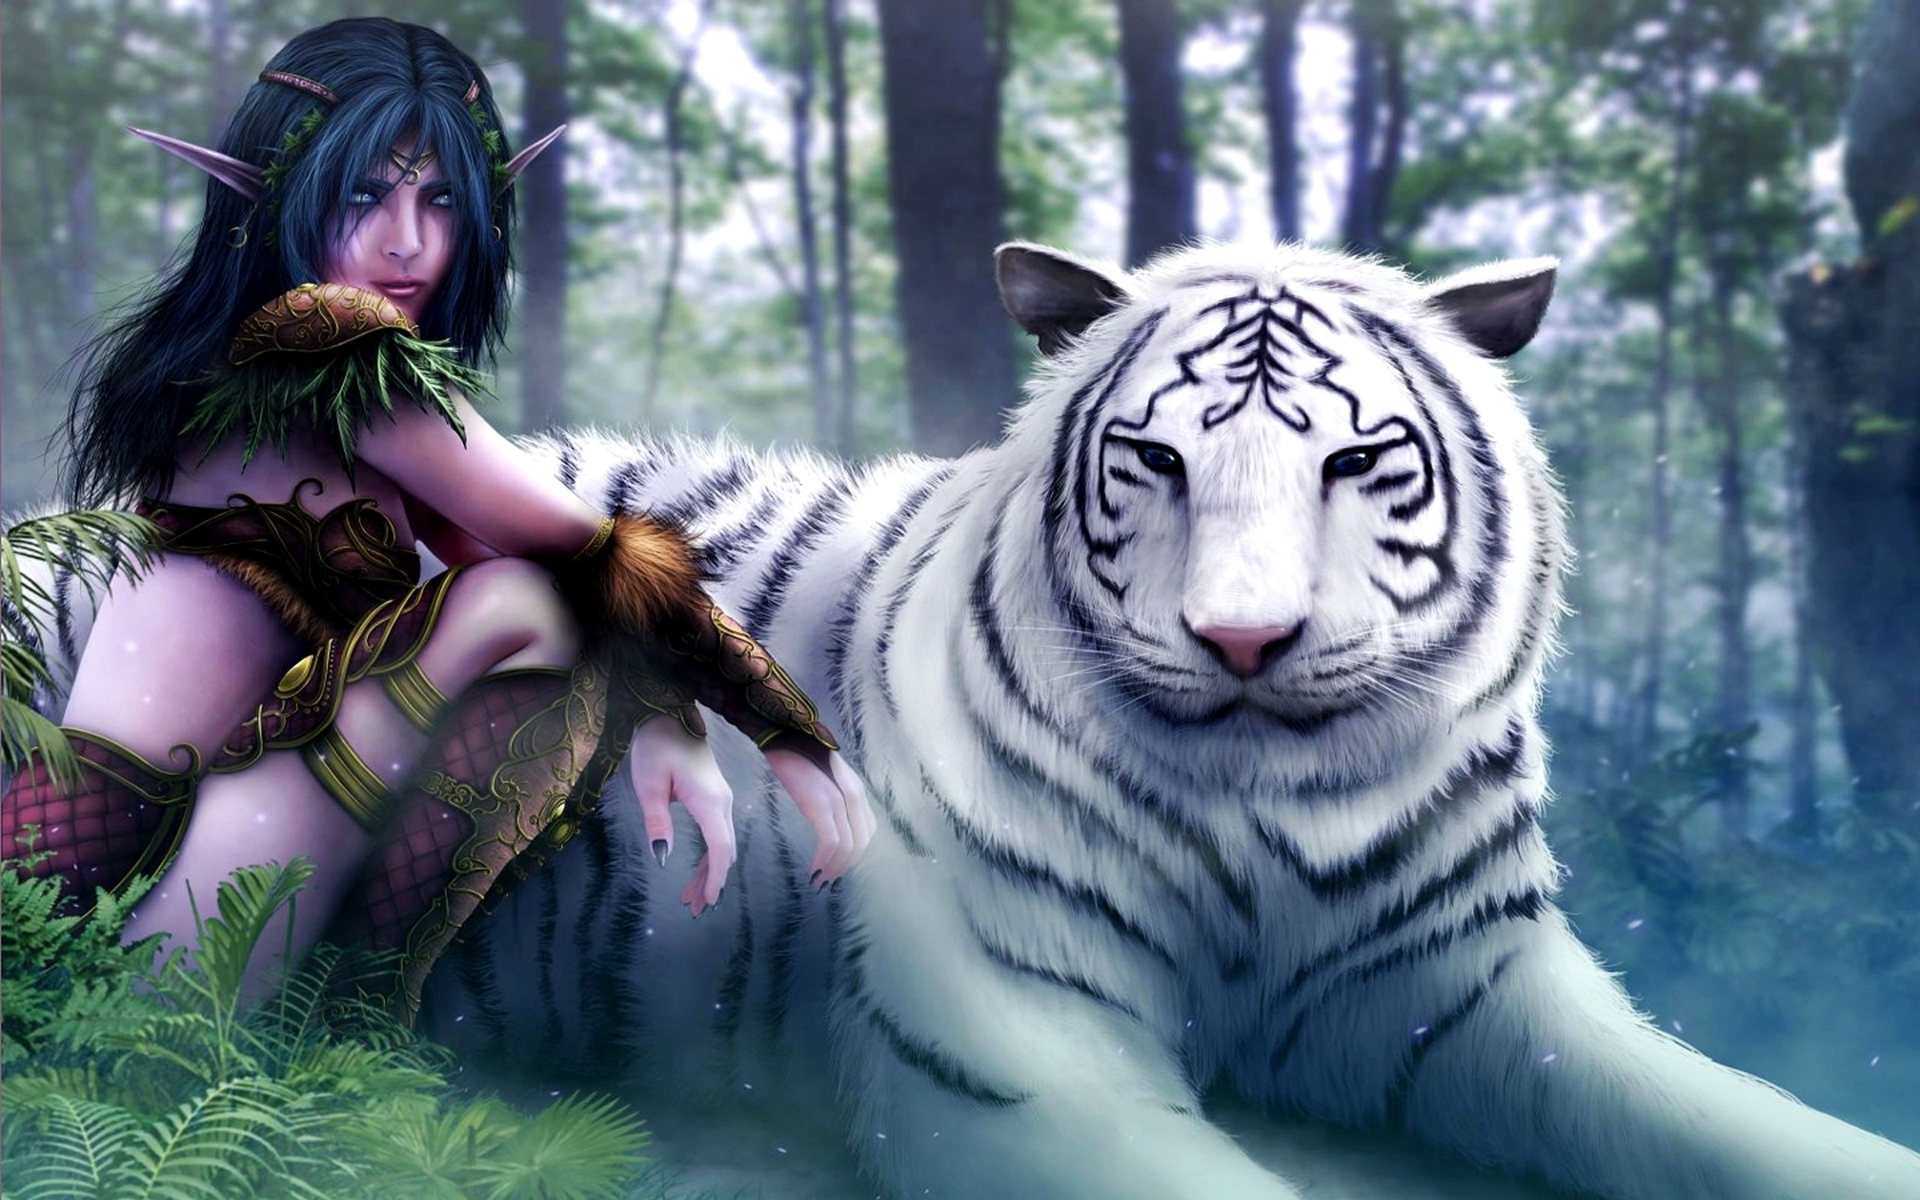 World of warcraft white tiger fantasy art elves artwork drawings (1920x1200)